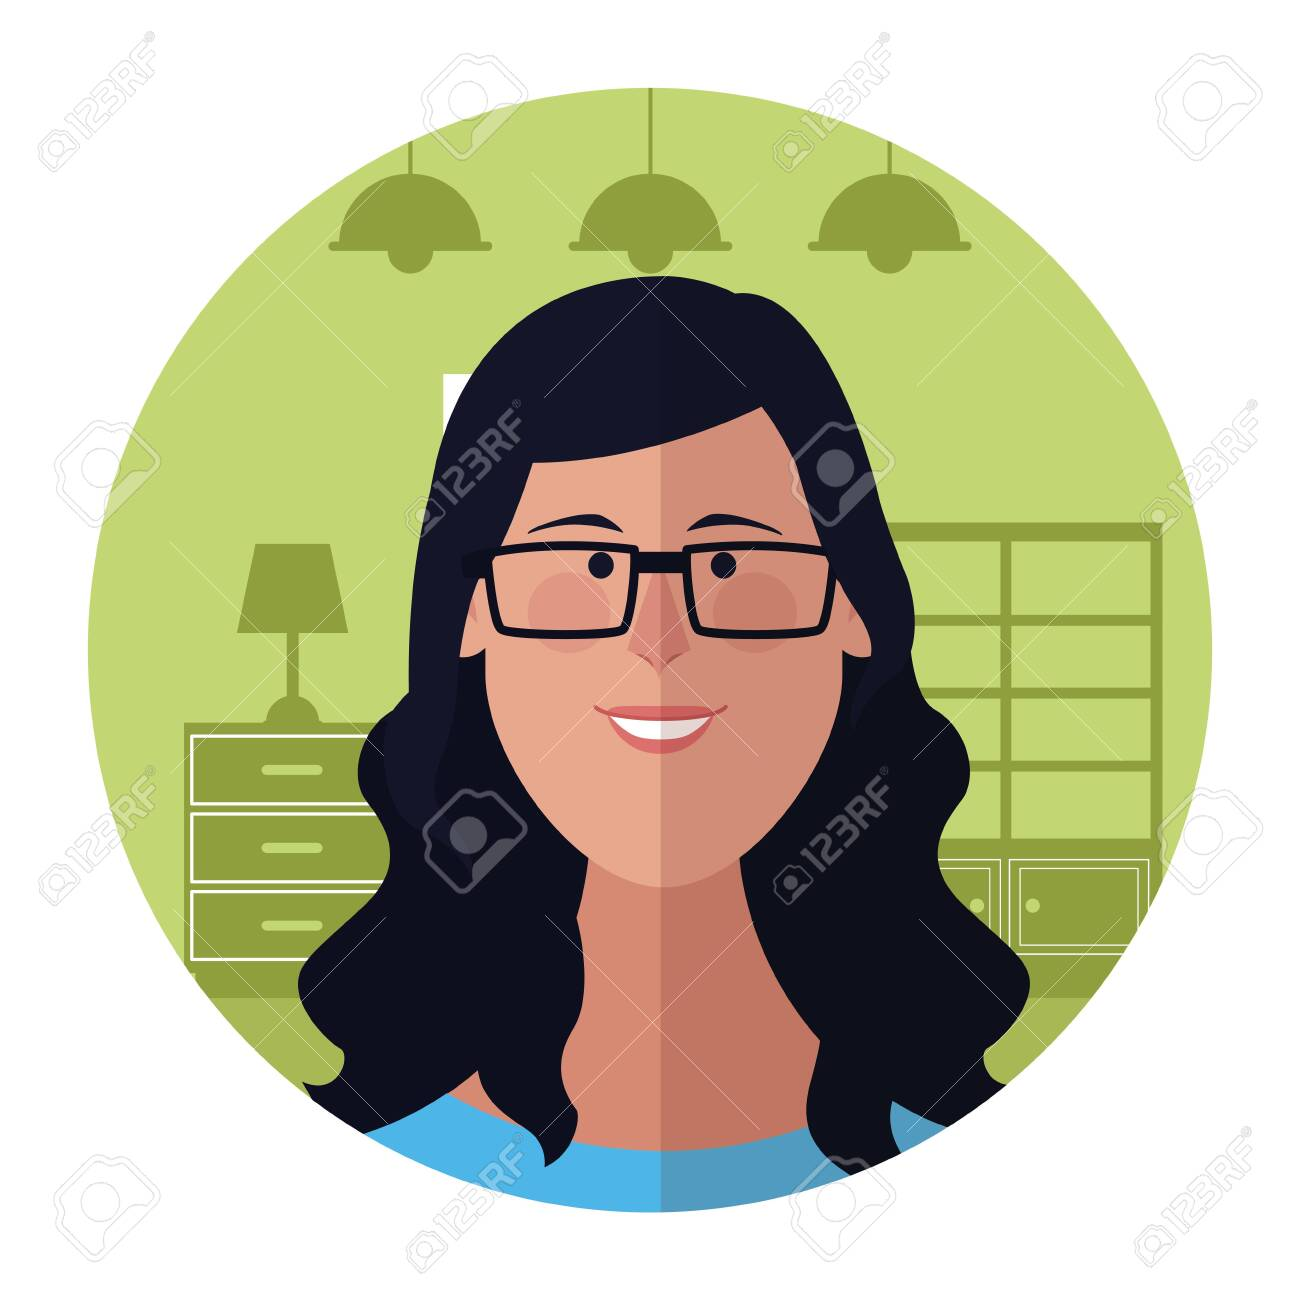 Woman With Glasses Face Cartoon Profile Inside Home Round Icon Royalty Free Cliparts Vectors And Stock Illustration Image 133636280